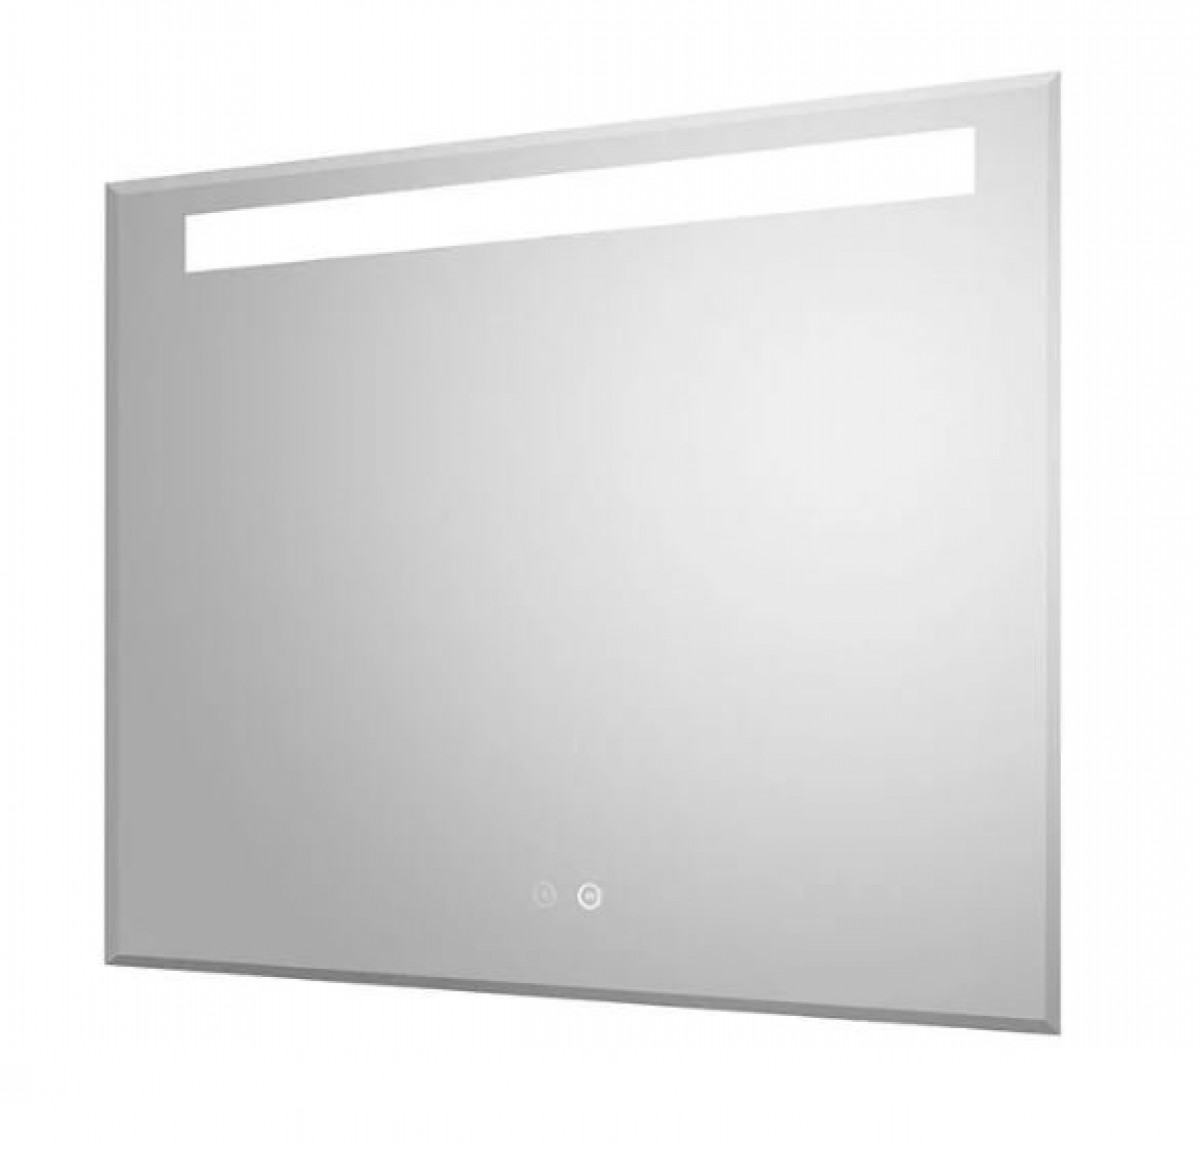 Hudson reed vizor led touch sensor mirror with demister for Mirror 80 x 60